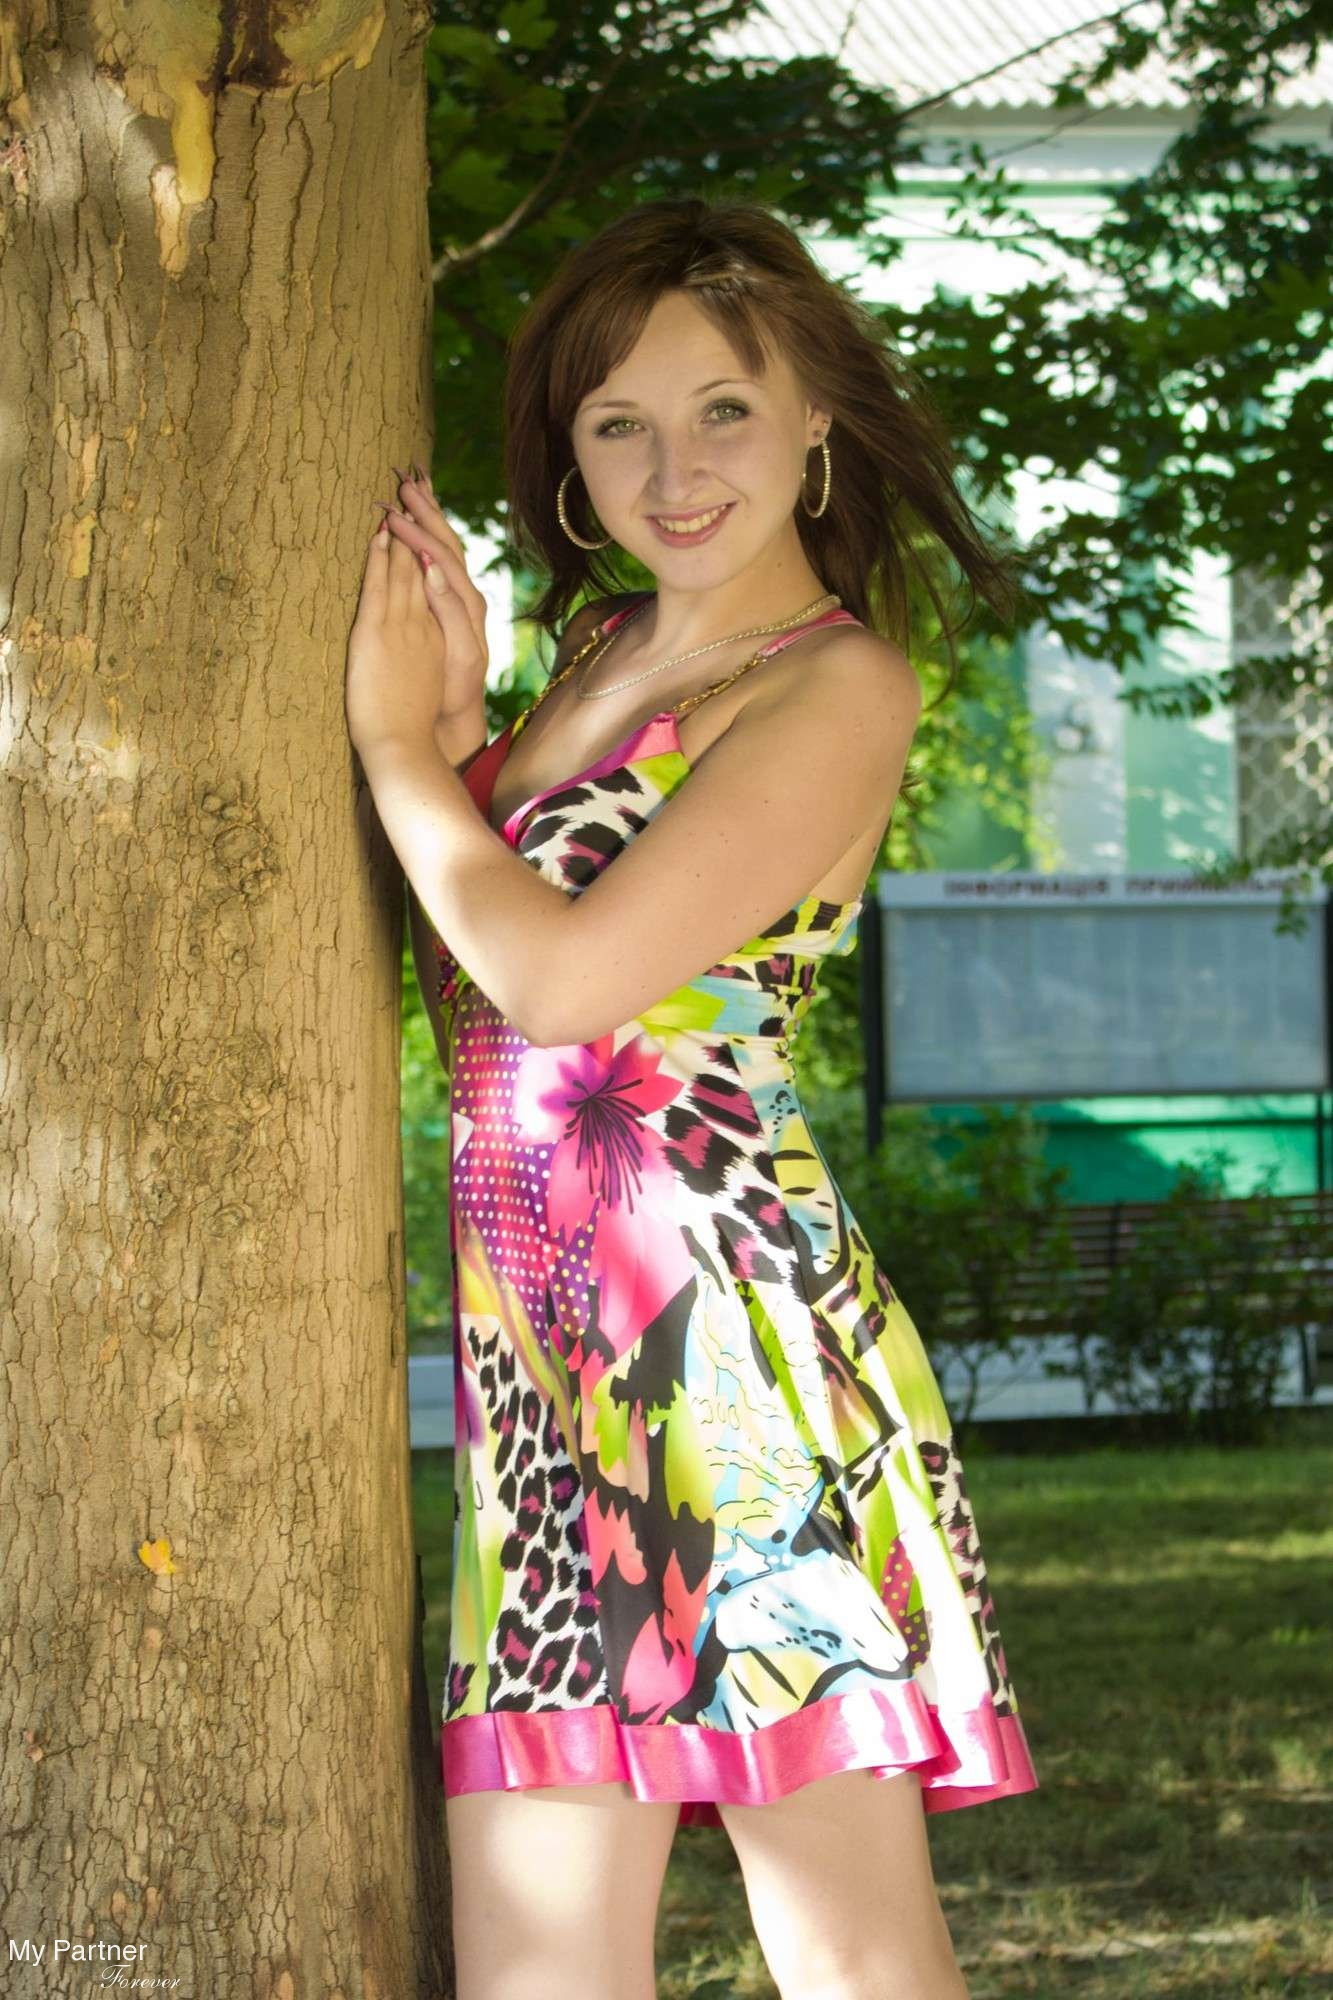 best free dating sites ukraine Free ukrainian ladies dating with uadreams you can meet beautiful single ukraine girls free join best online ukrainian dating service for free.